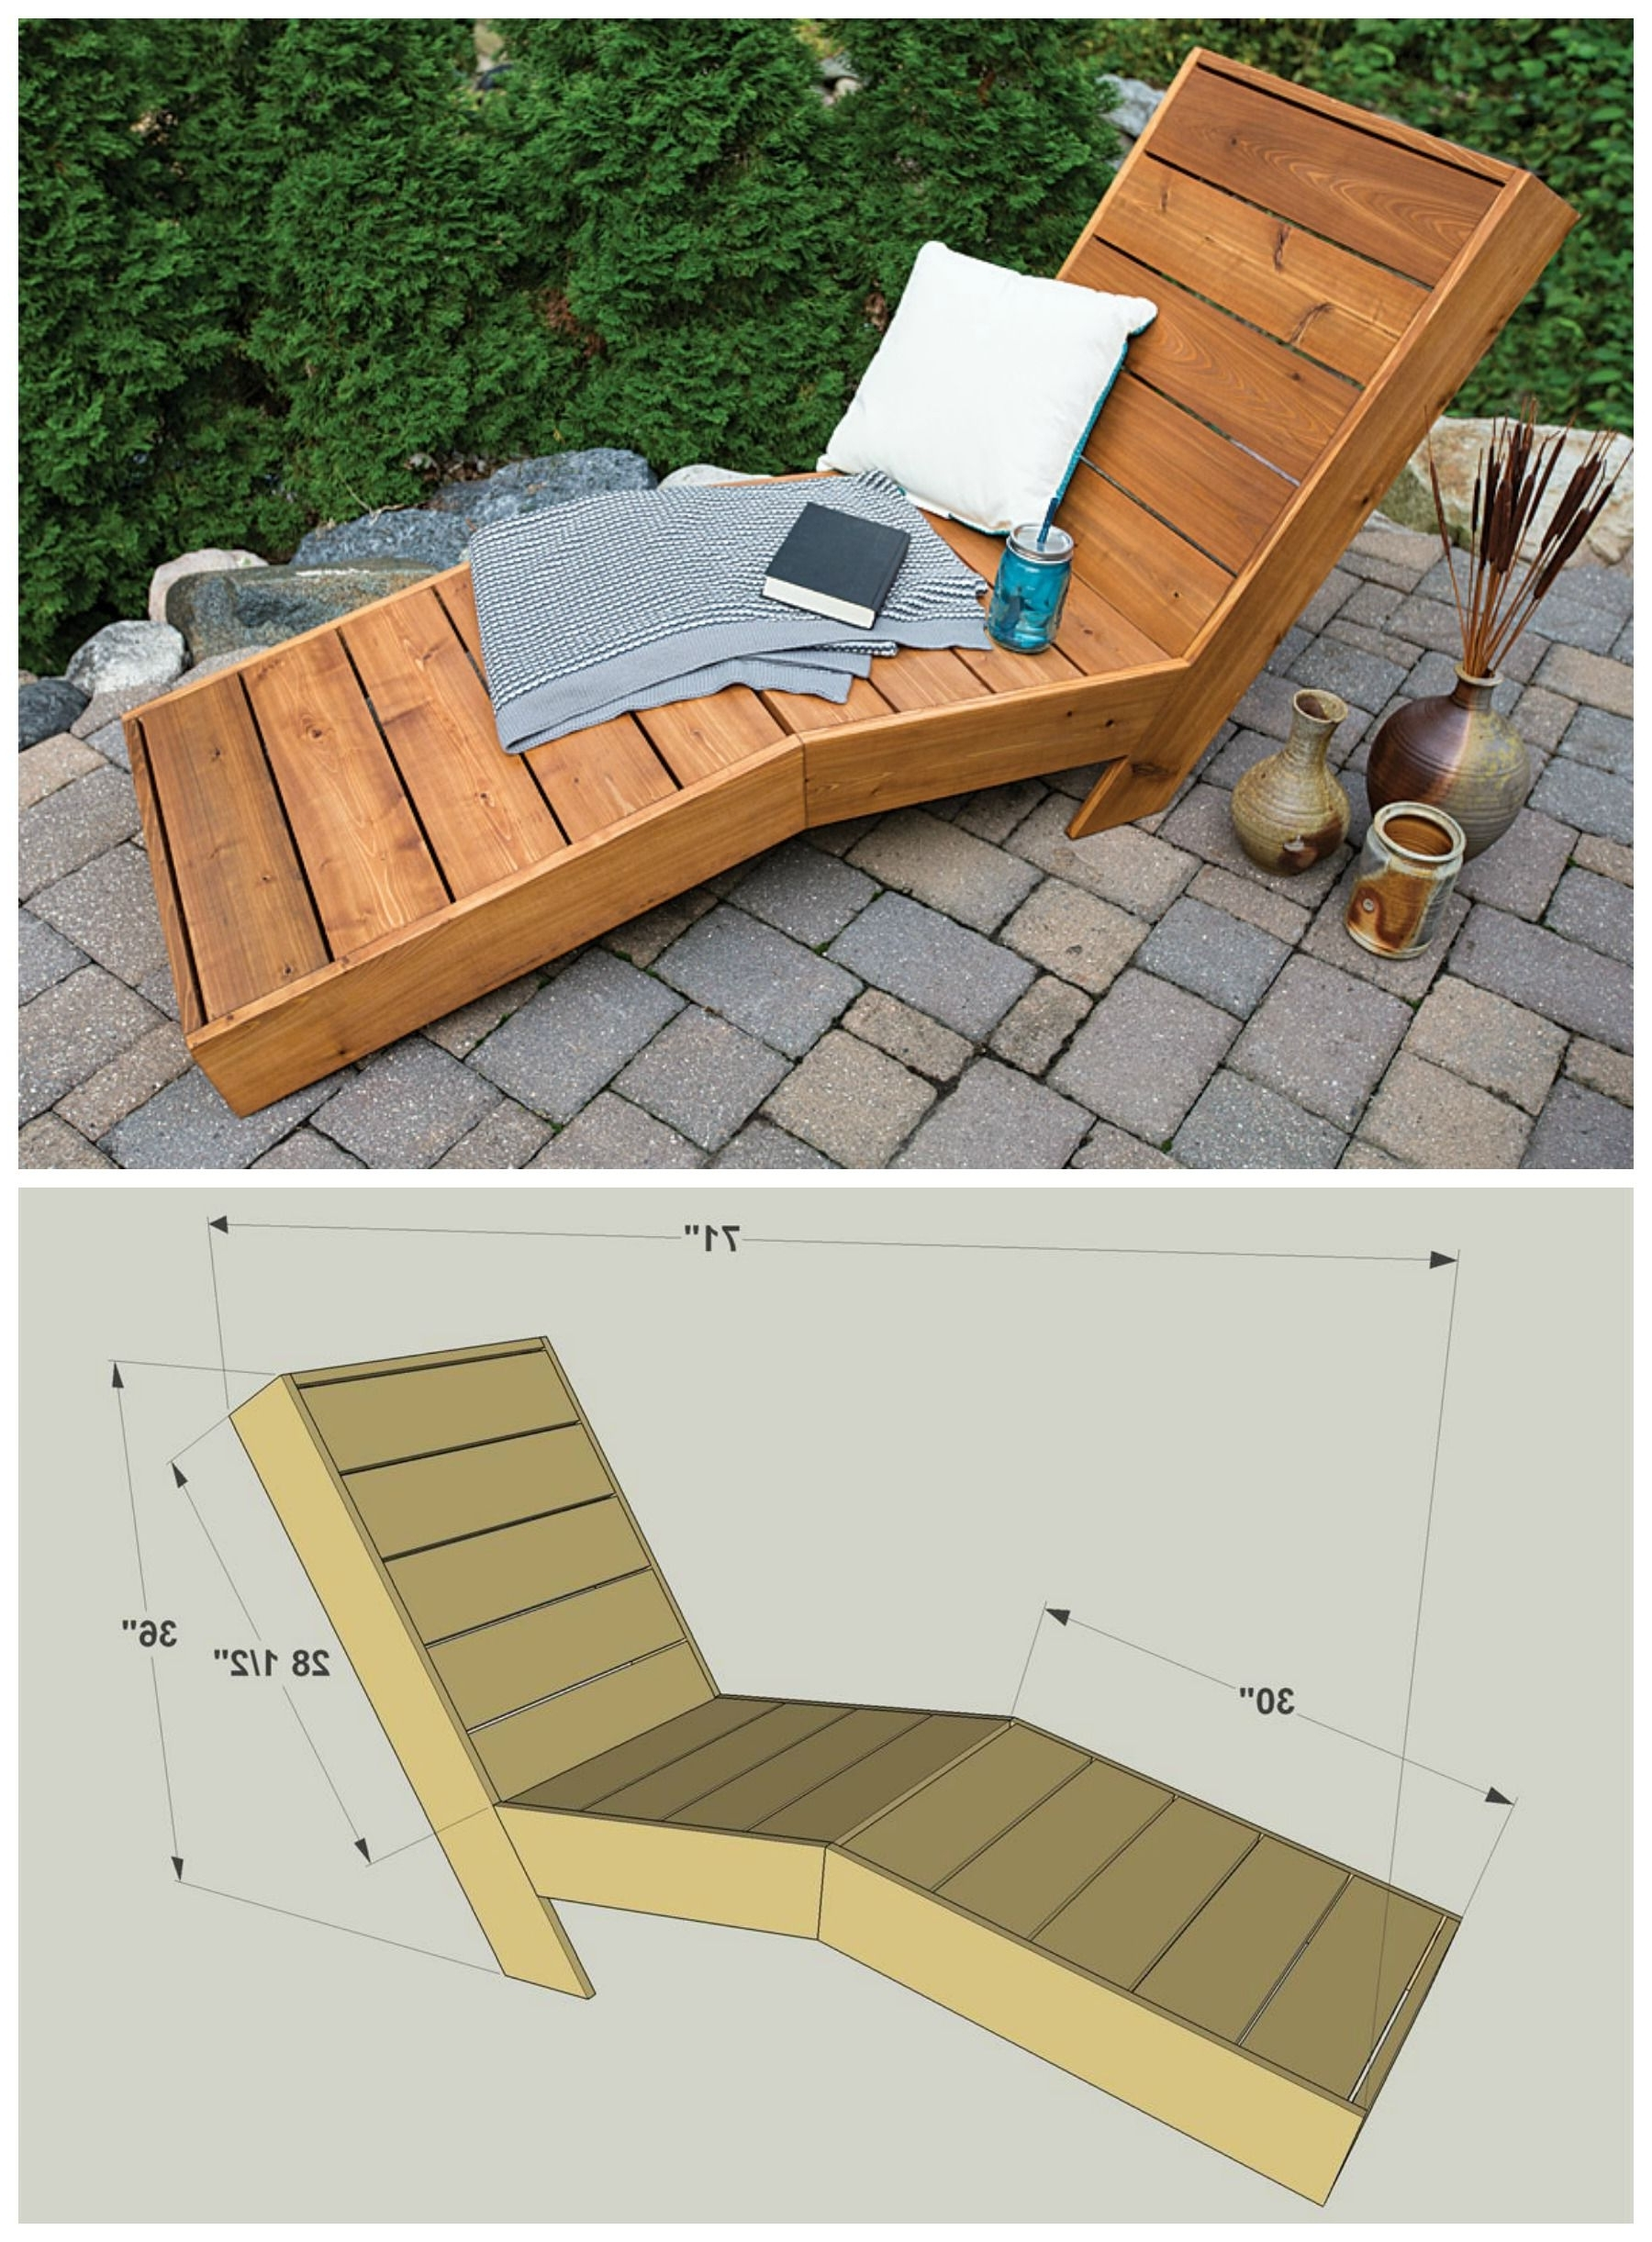 Diy Outdoor Chaise Lounge :: Free Plans At Buildsomething With Current Diy Outdoor Chaise Lounge Chairs (View 5 of 15)